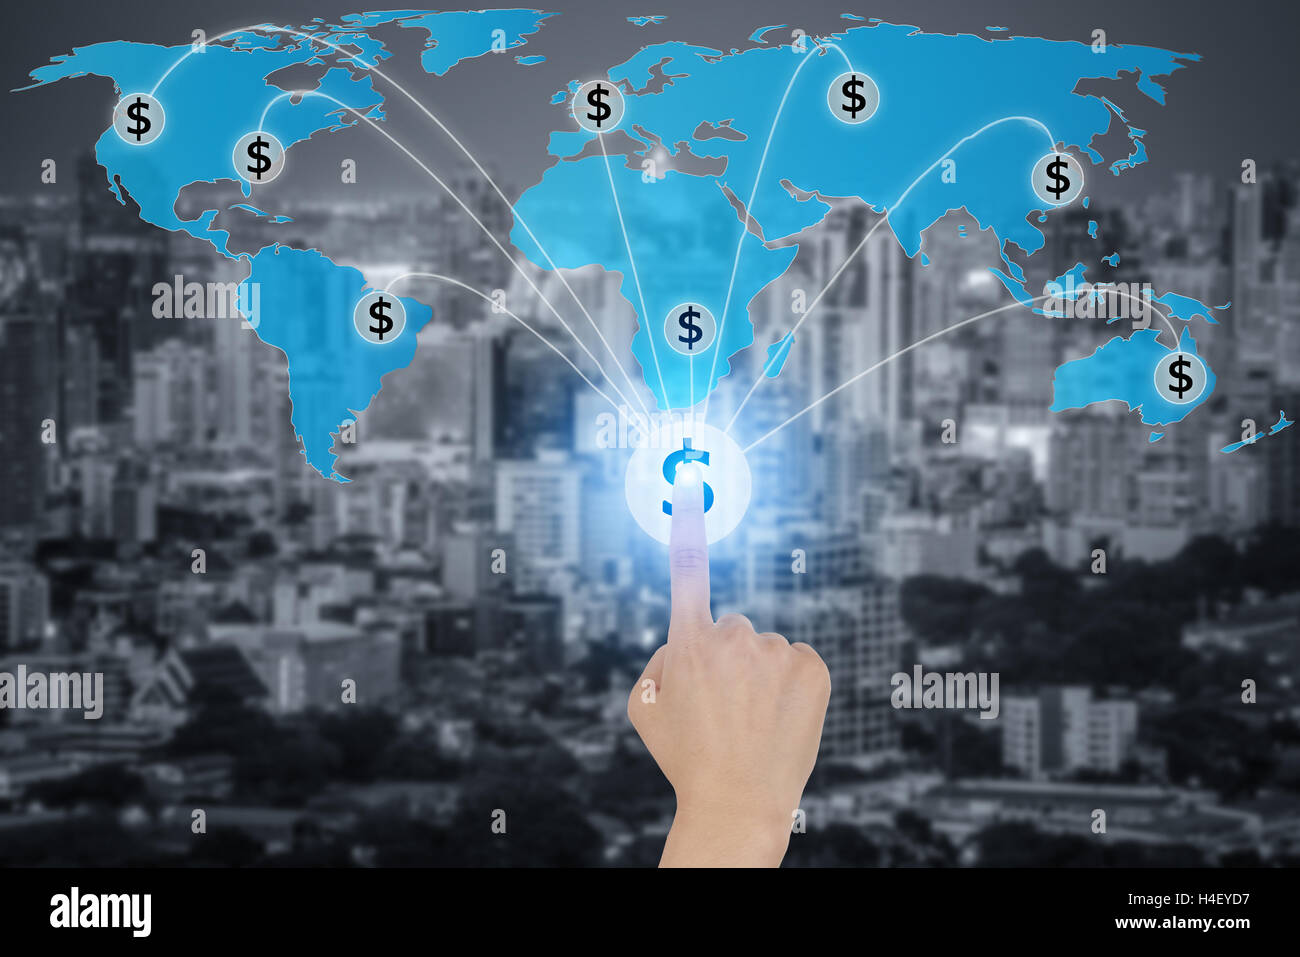 Touching button with dollar currency symbols connected in network, concept about global finance connection network. - Stock Image